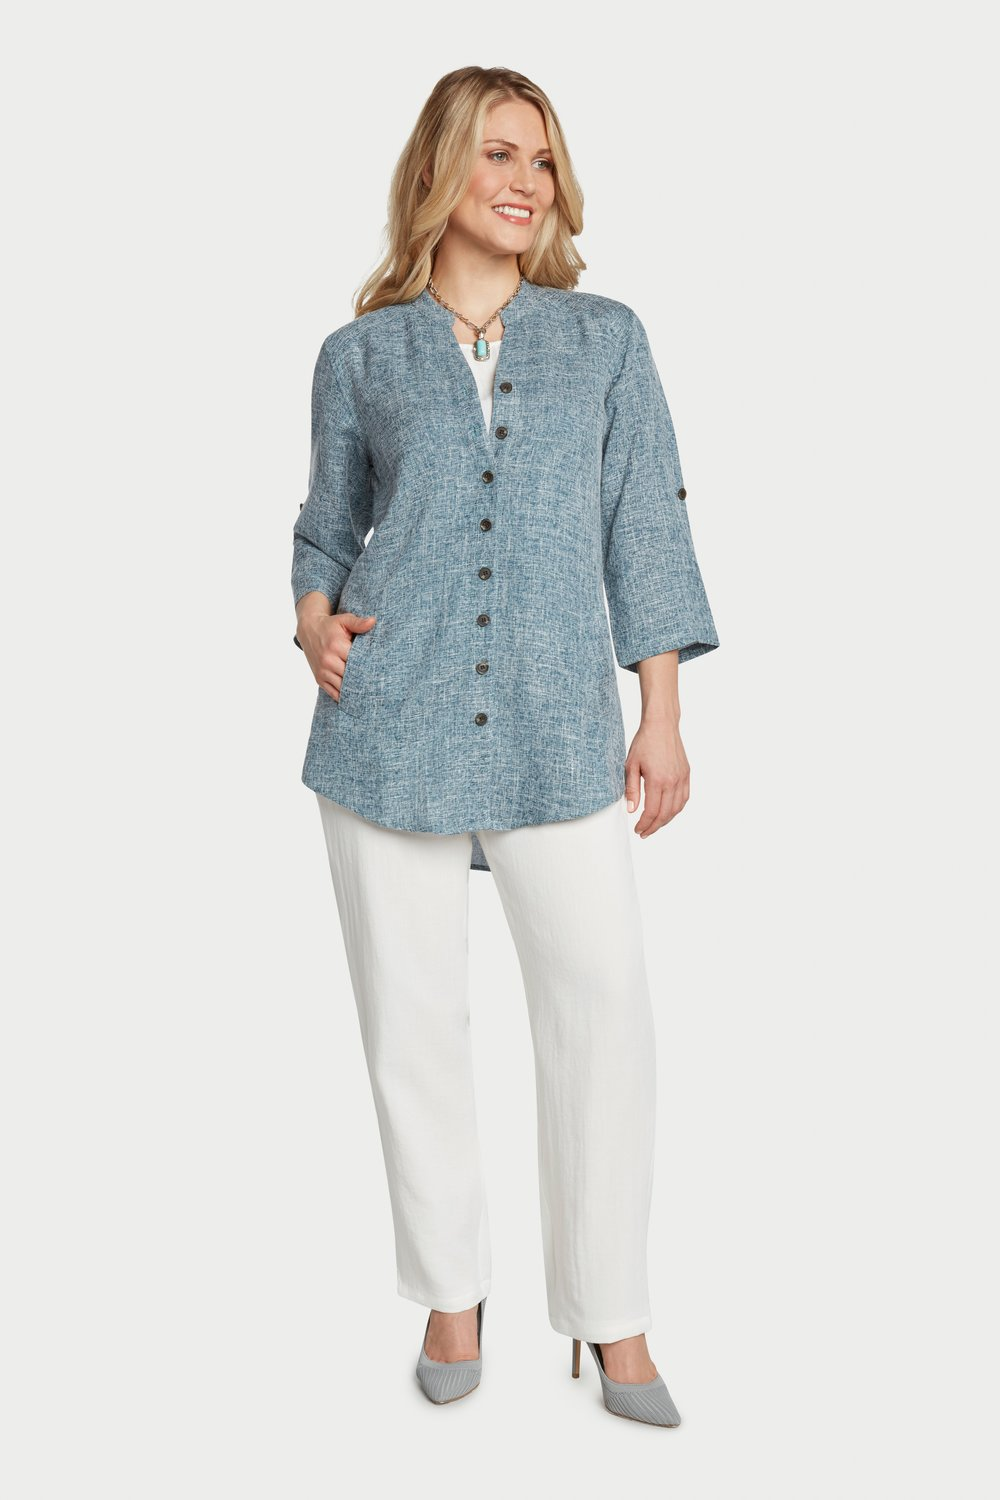 AA7125 - Annie's Shirt Teal/White Heathered - JC24